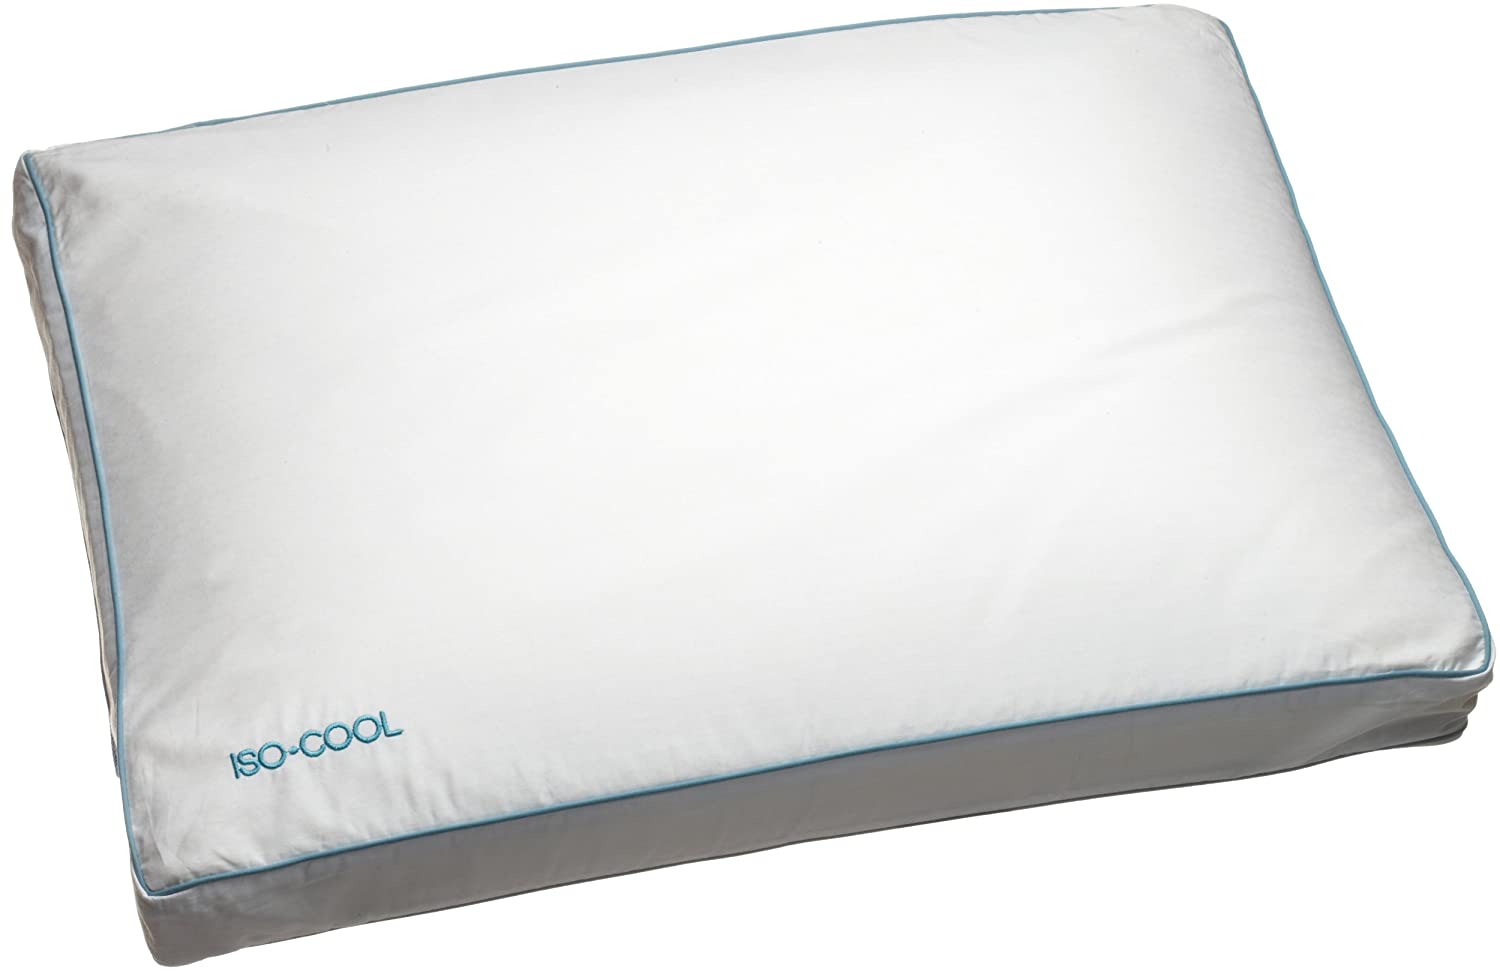 Sleep Better Iso-Cool Memory Foam Pillow, Traditional Shape $43.99